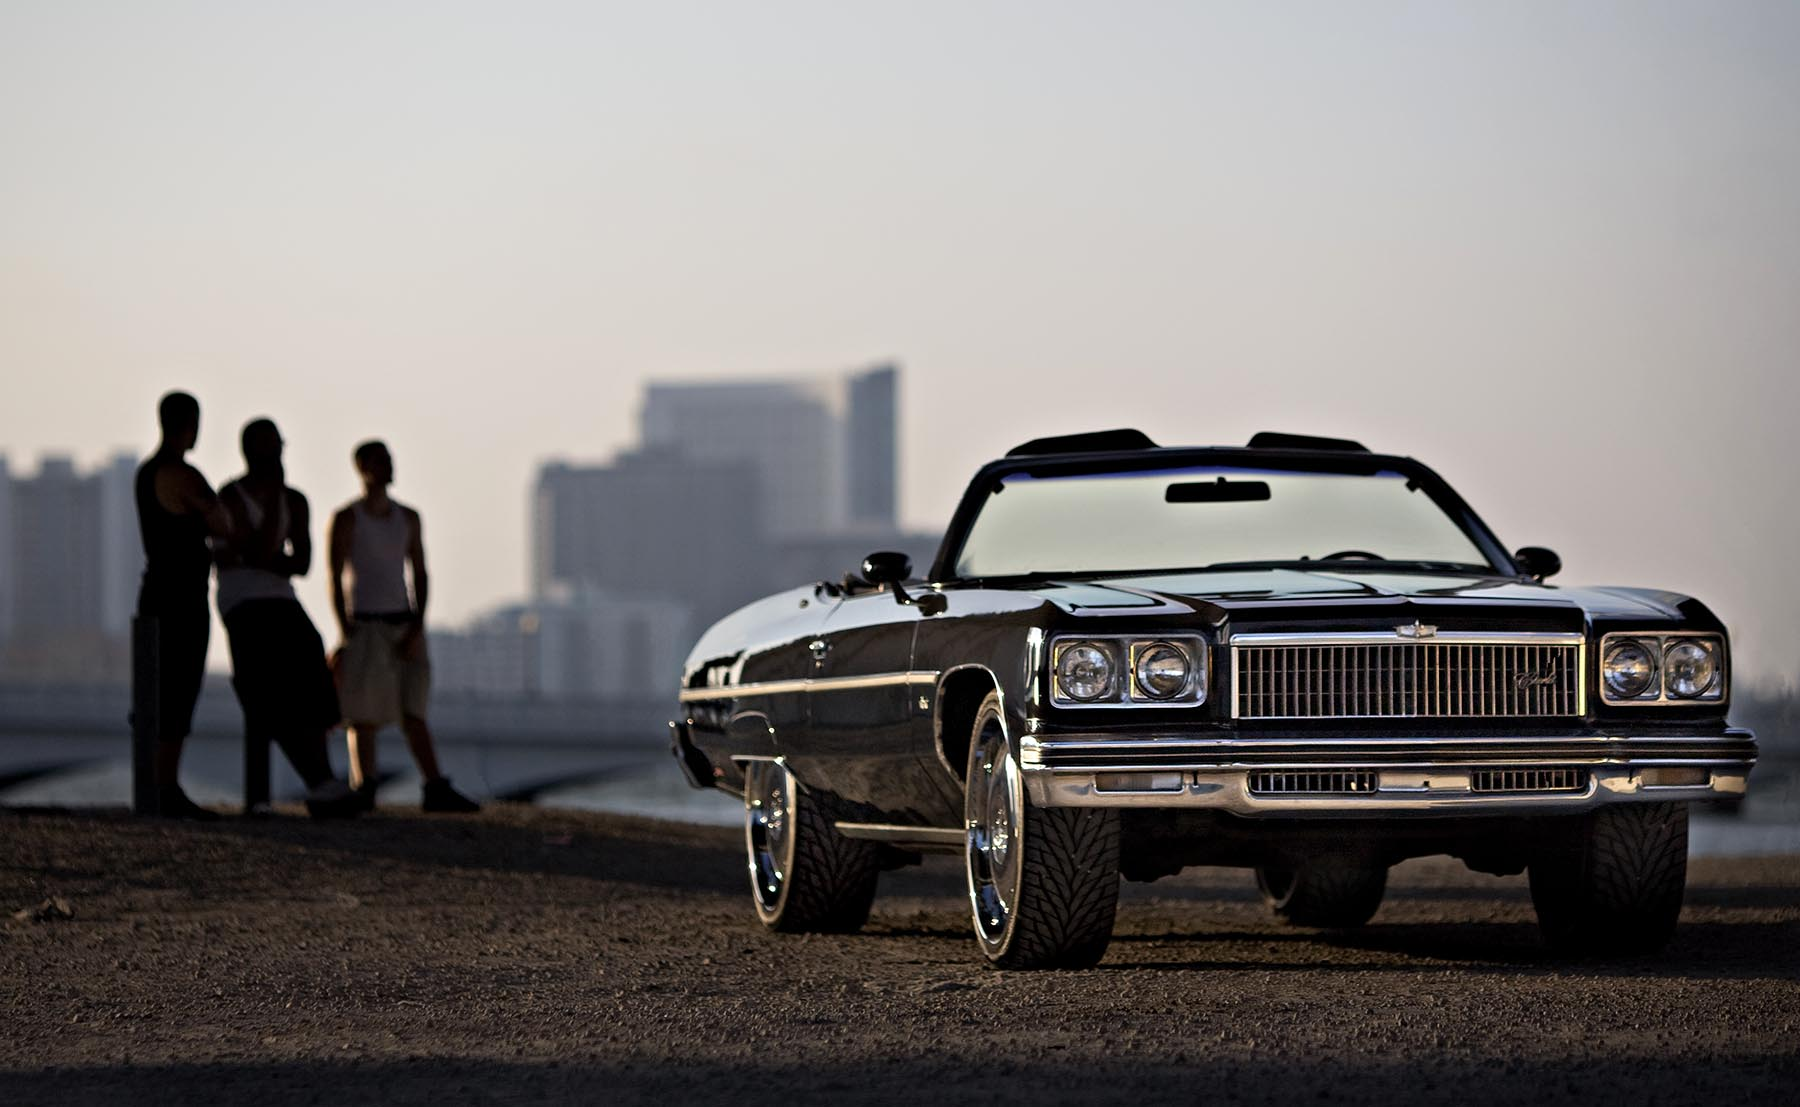 bob-croslin-photographer-hiphop-car-culture-miami-weird-Florida